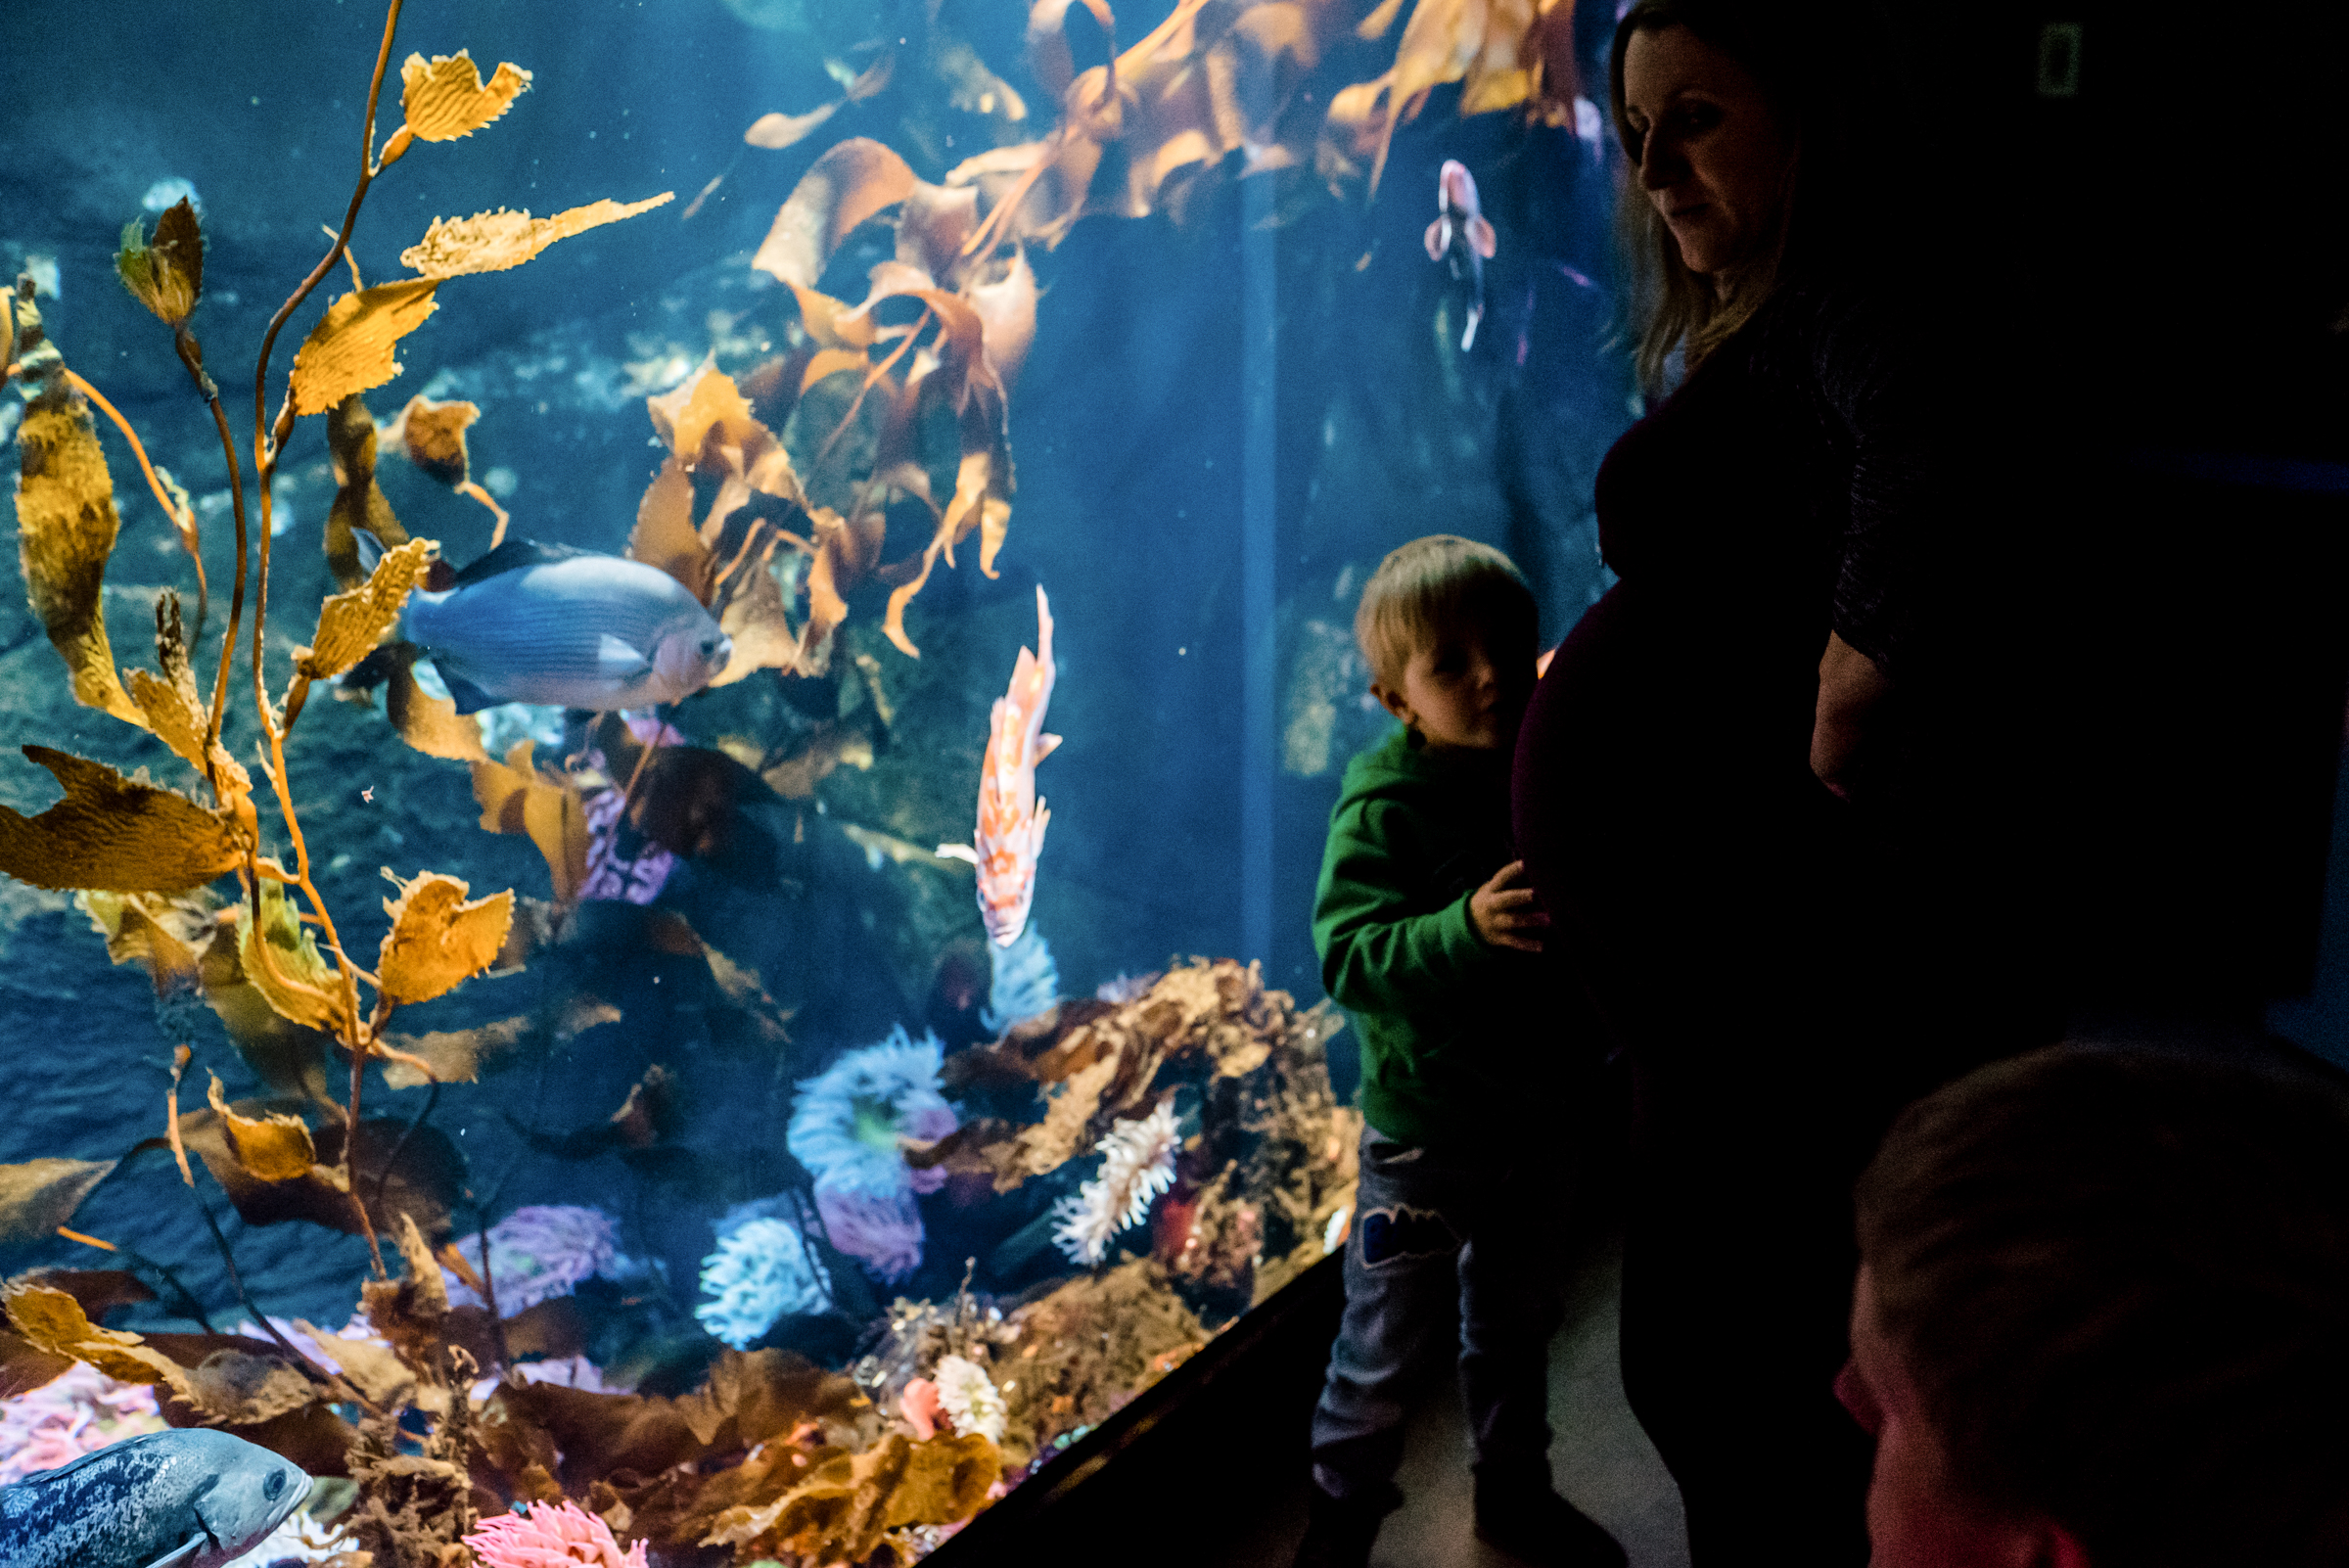 Nicola_Reiersen_Photography_Victoria_BC_Aquarium_Maternity_Session (113).jpg